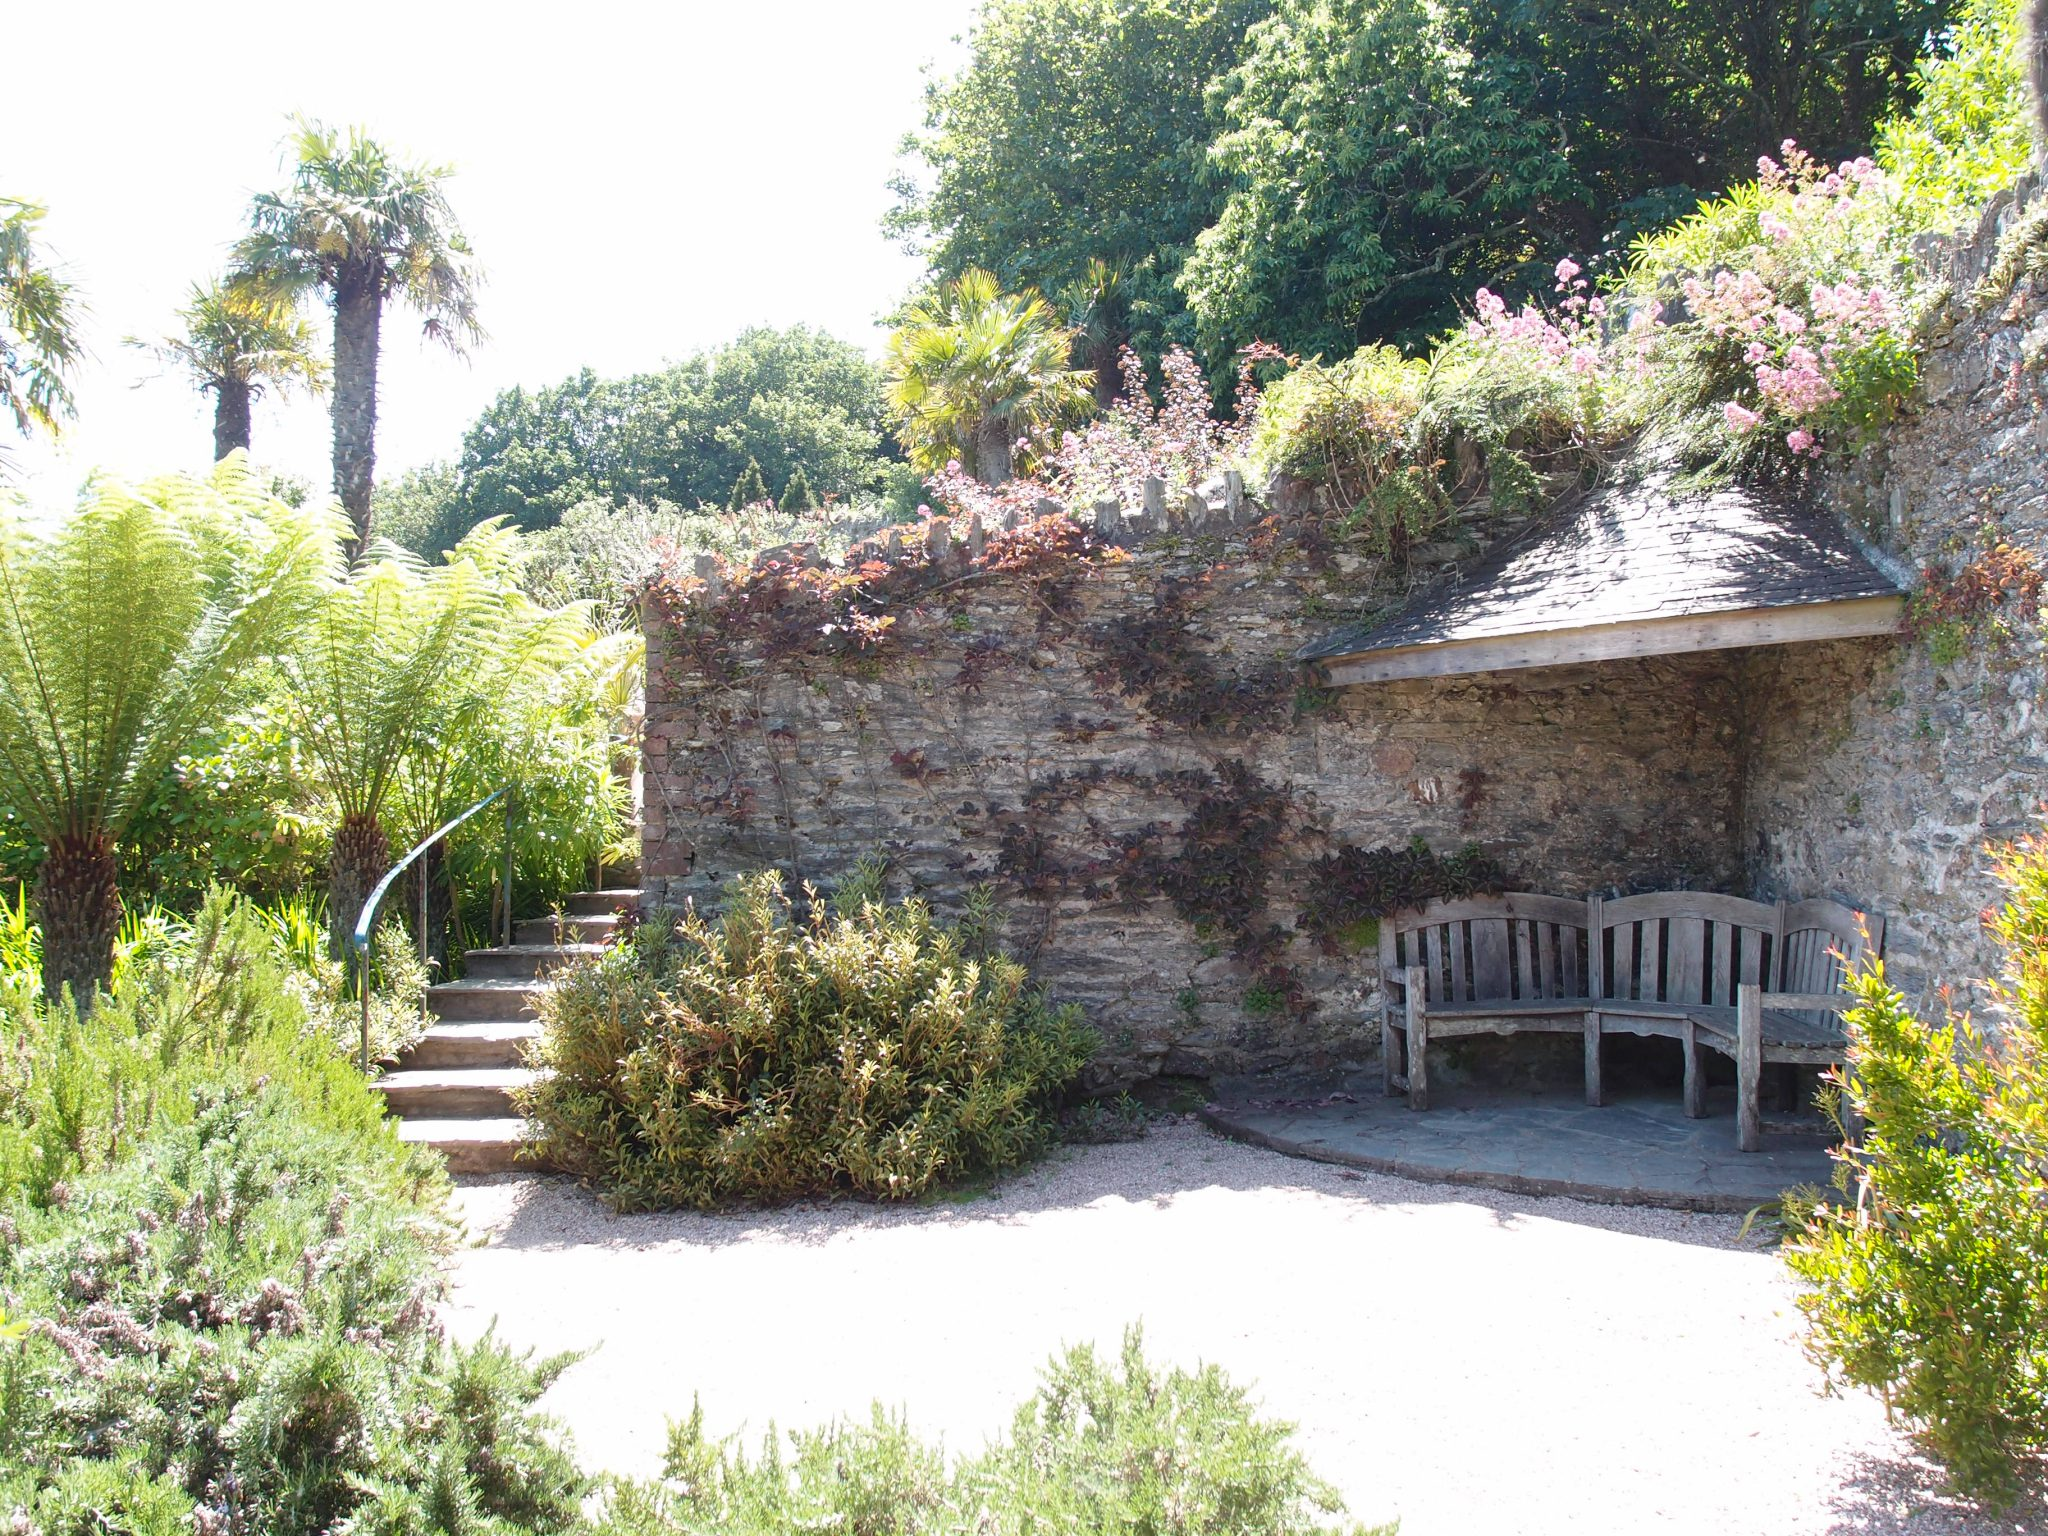 The Gazebo Garden has a small, sheltered seating area. This hidden pocket of Overbeck's is planted with cistus, and myrtle trees with cinnamon bark.